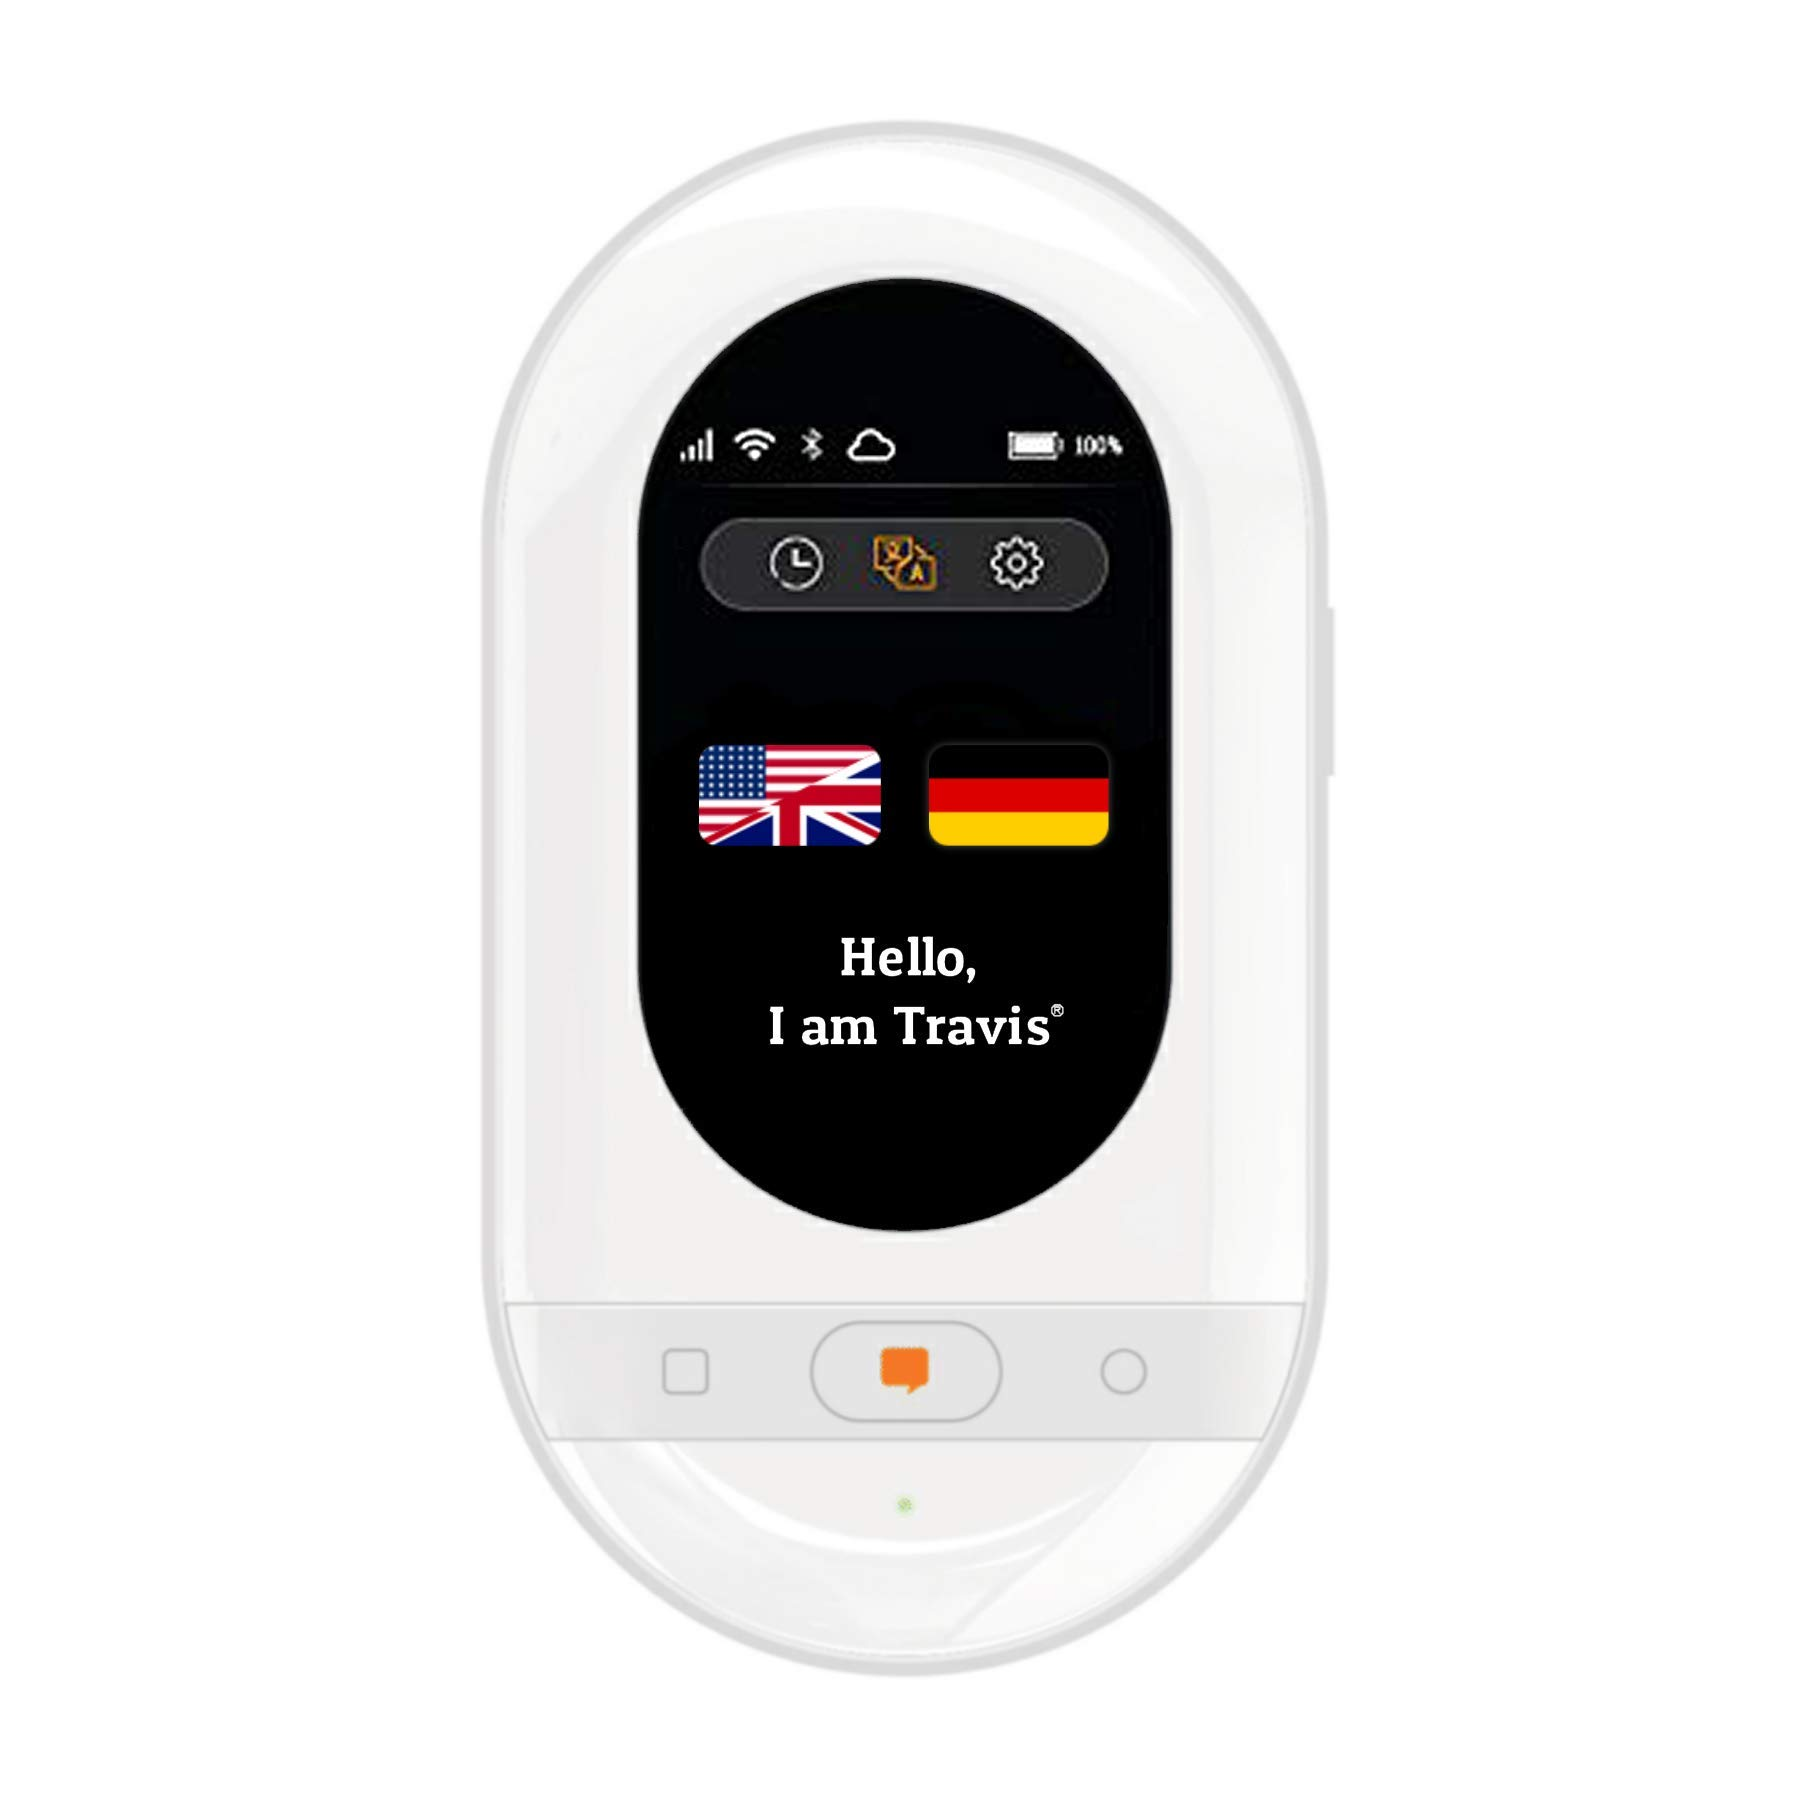 Travis Touch Smart Pocket Translator - 1GB Global Data SIM Card incl, 100+ Languages, Two Way Translations, Touch Screen, Hotspot (White)